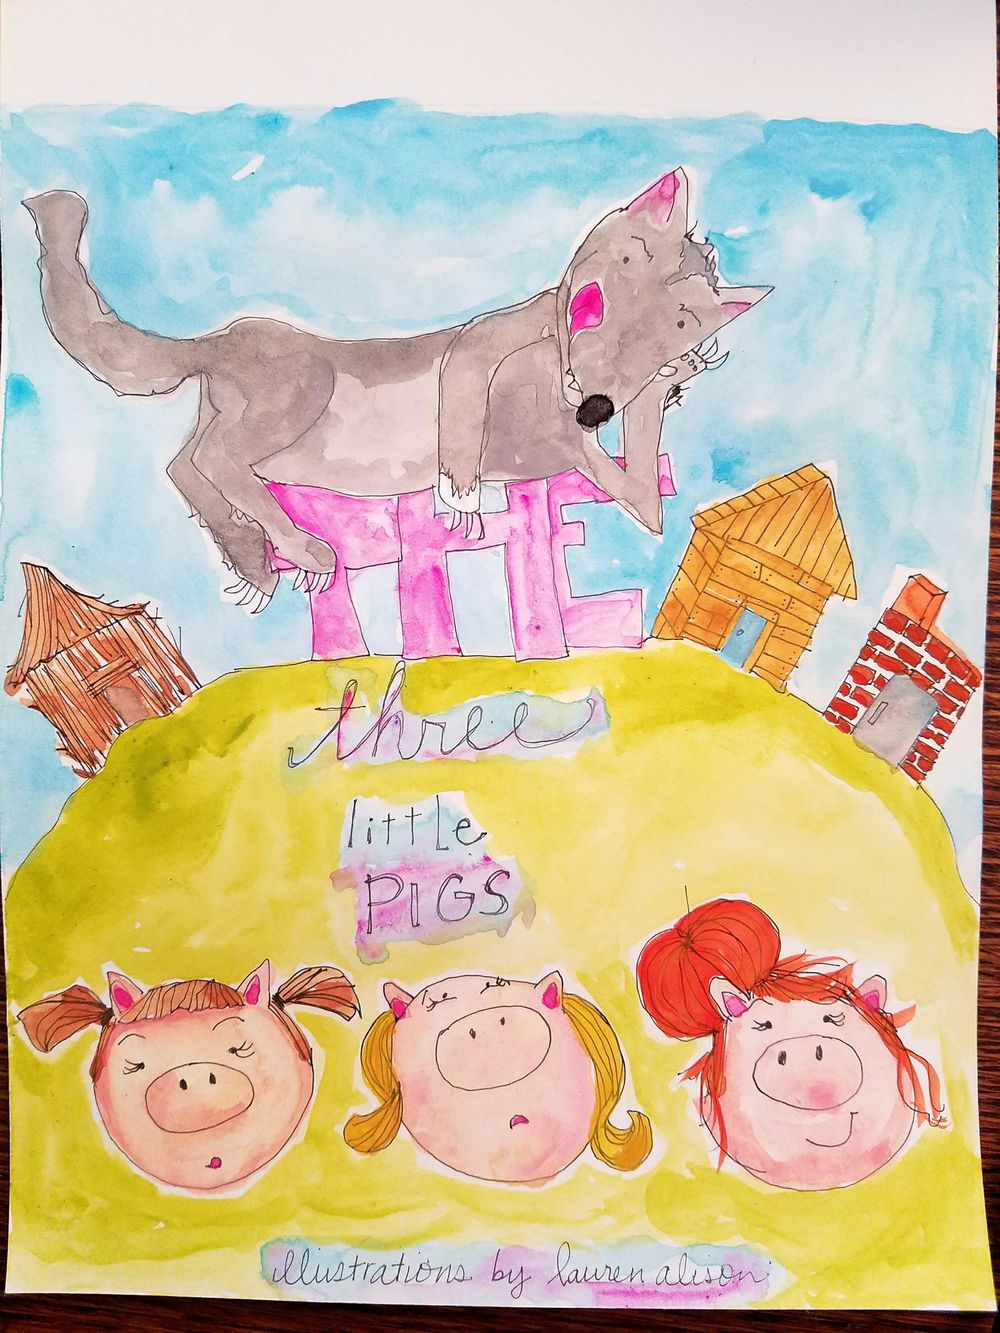 three little (girl) pigs - image 3 - student project